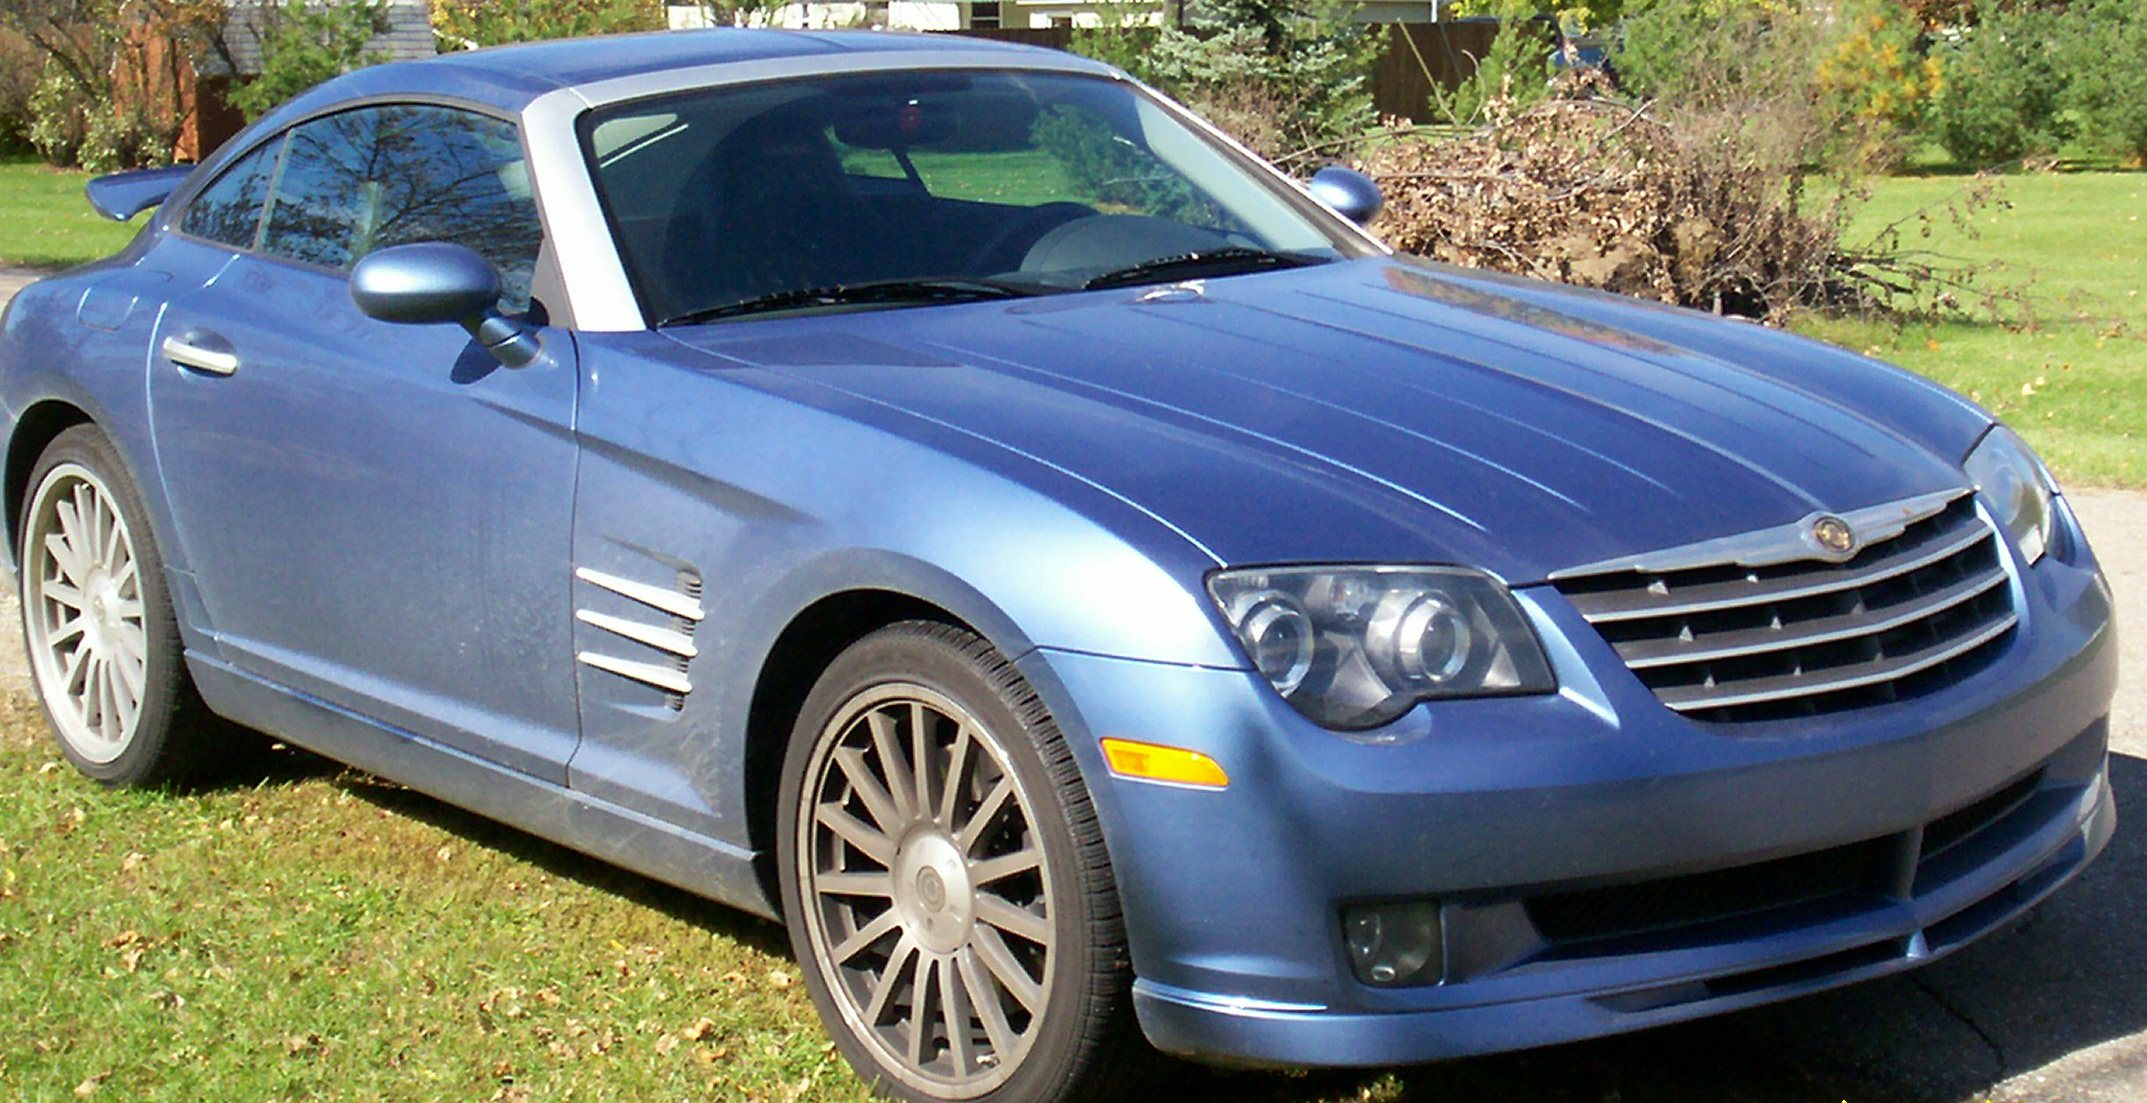 2005 Chrysler Crossfire #1